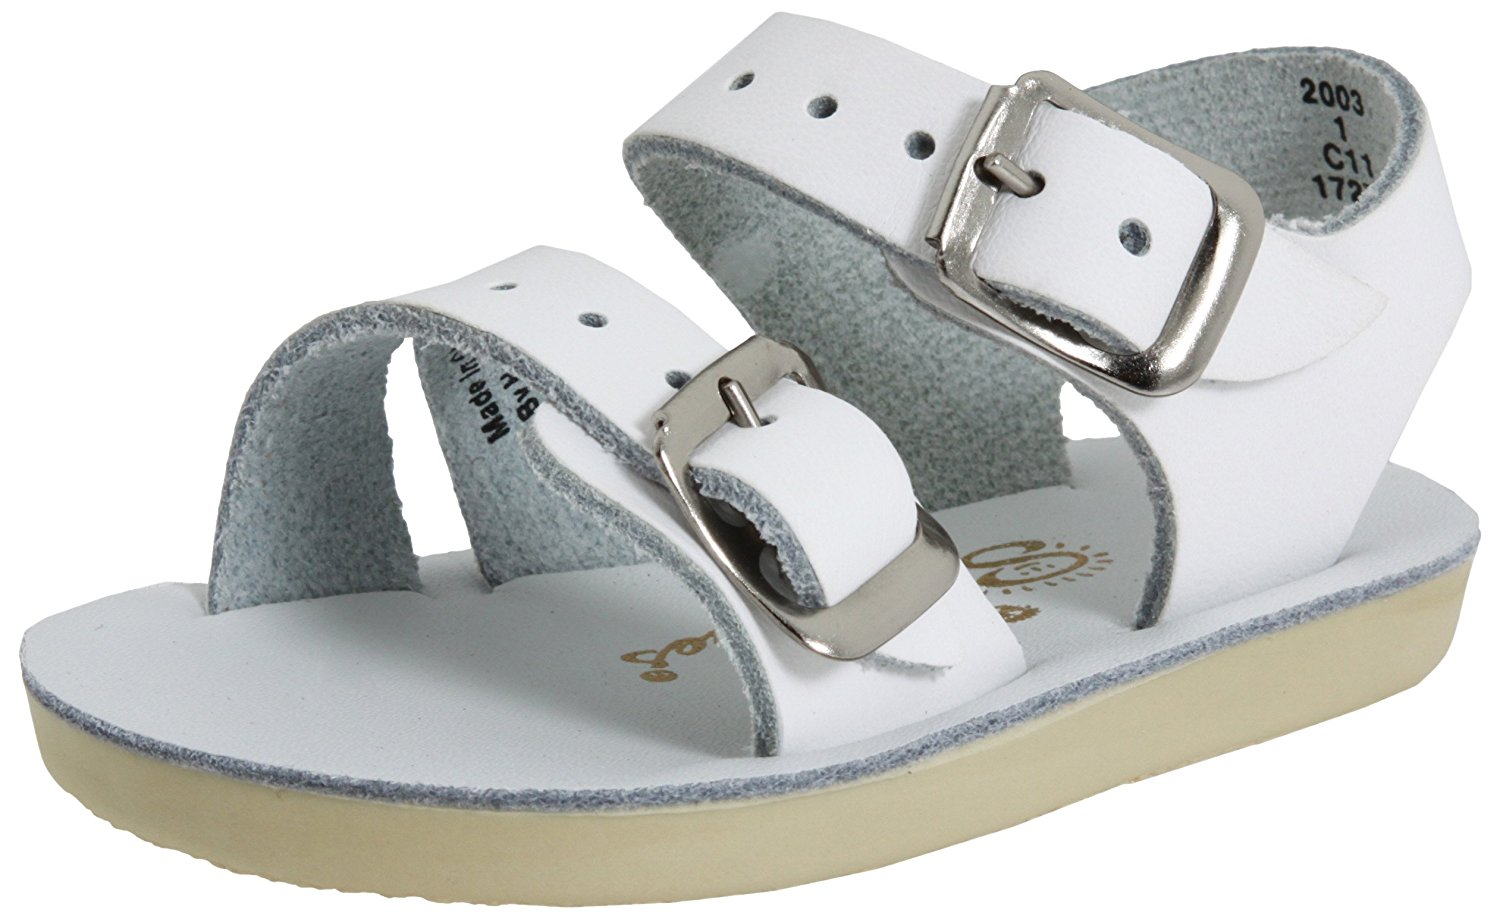 Salt Water Sandals by Hoy Sea Wees - White - 2 Infant